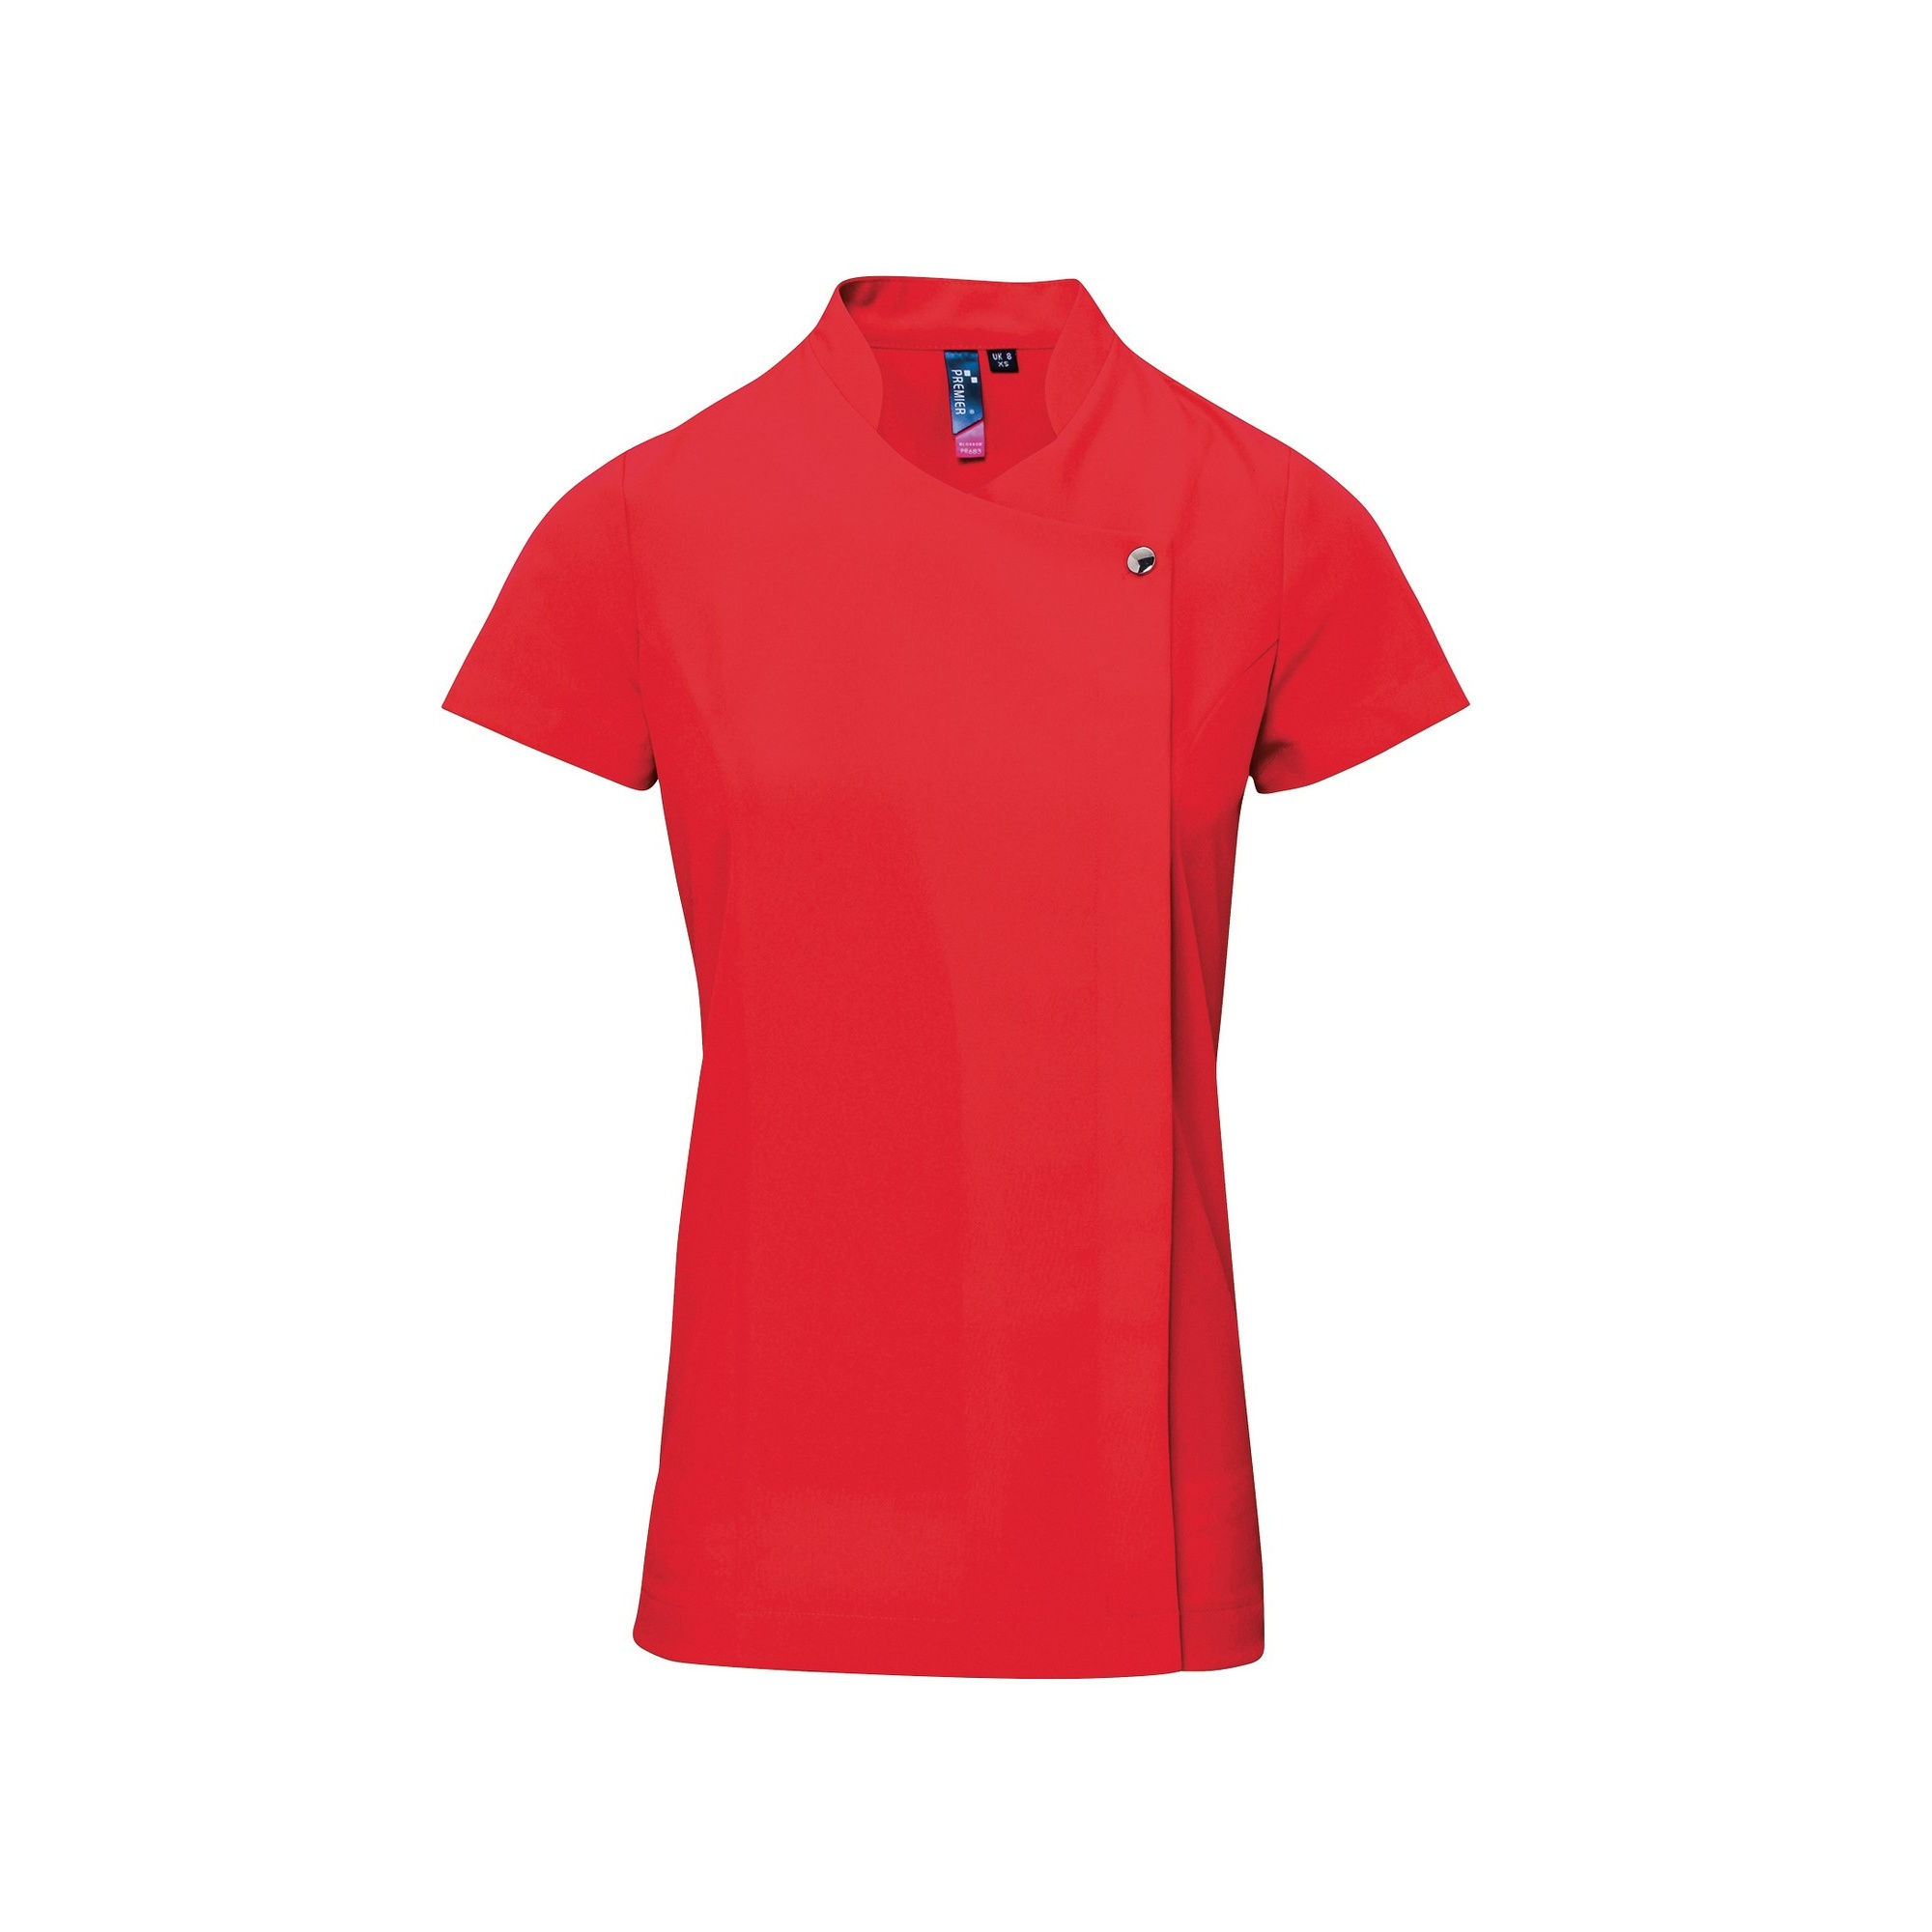 Premier Ladies/Womens *Blossom* Tunic / Health Beauty & Spa / Workwear (Pack of 2) (8) (Strawberry Red)